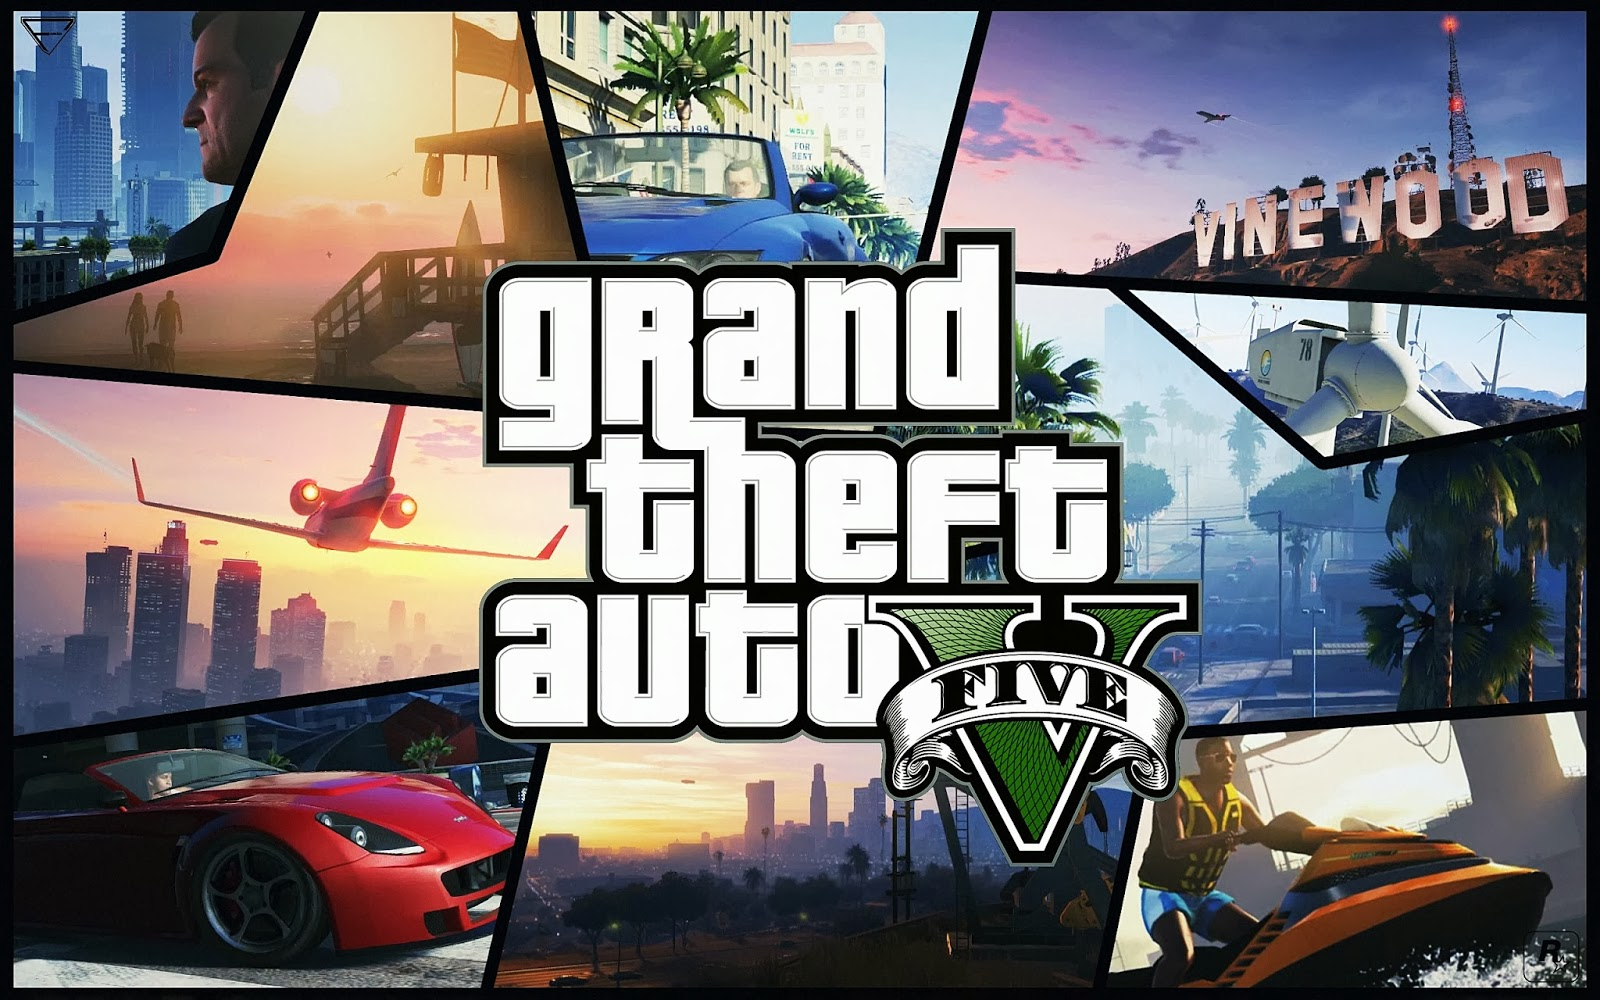 GTA V HD Wallpapers top game grand theft auto five images 1600x1000